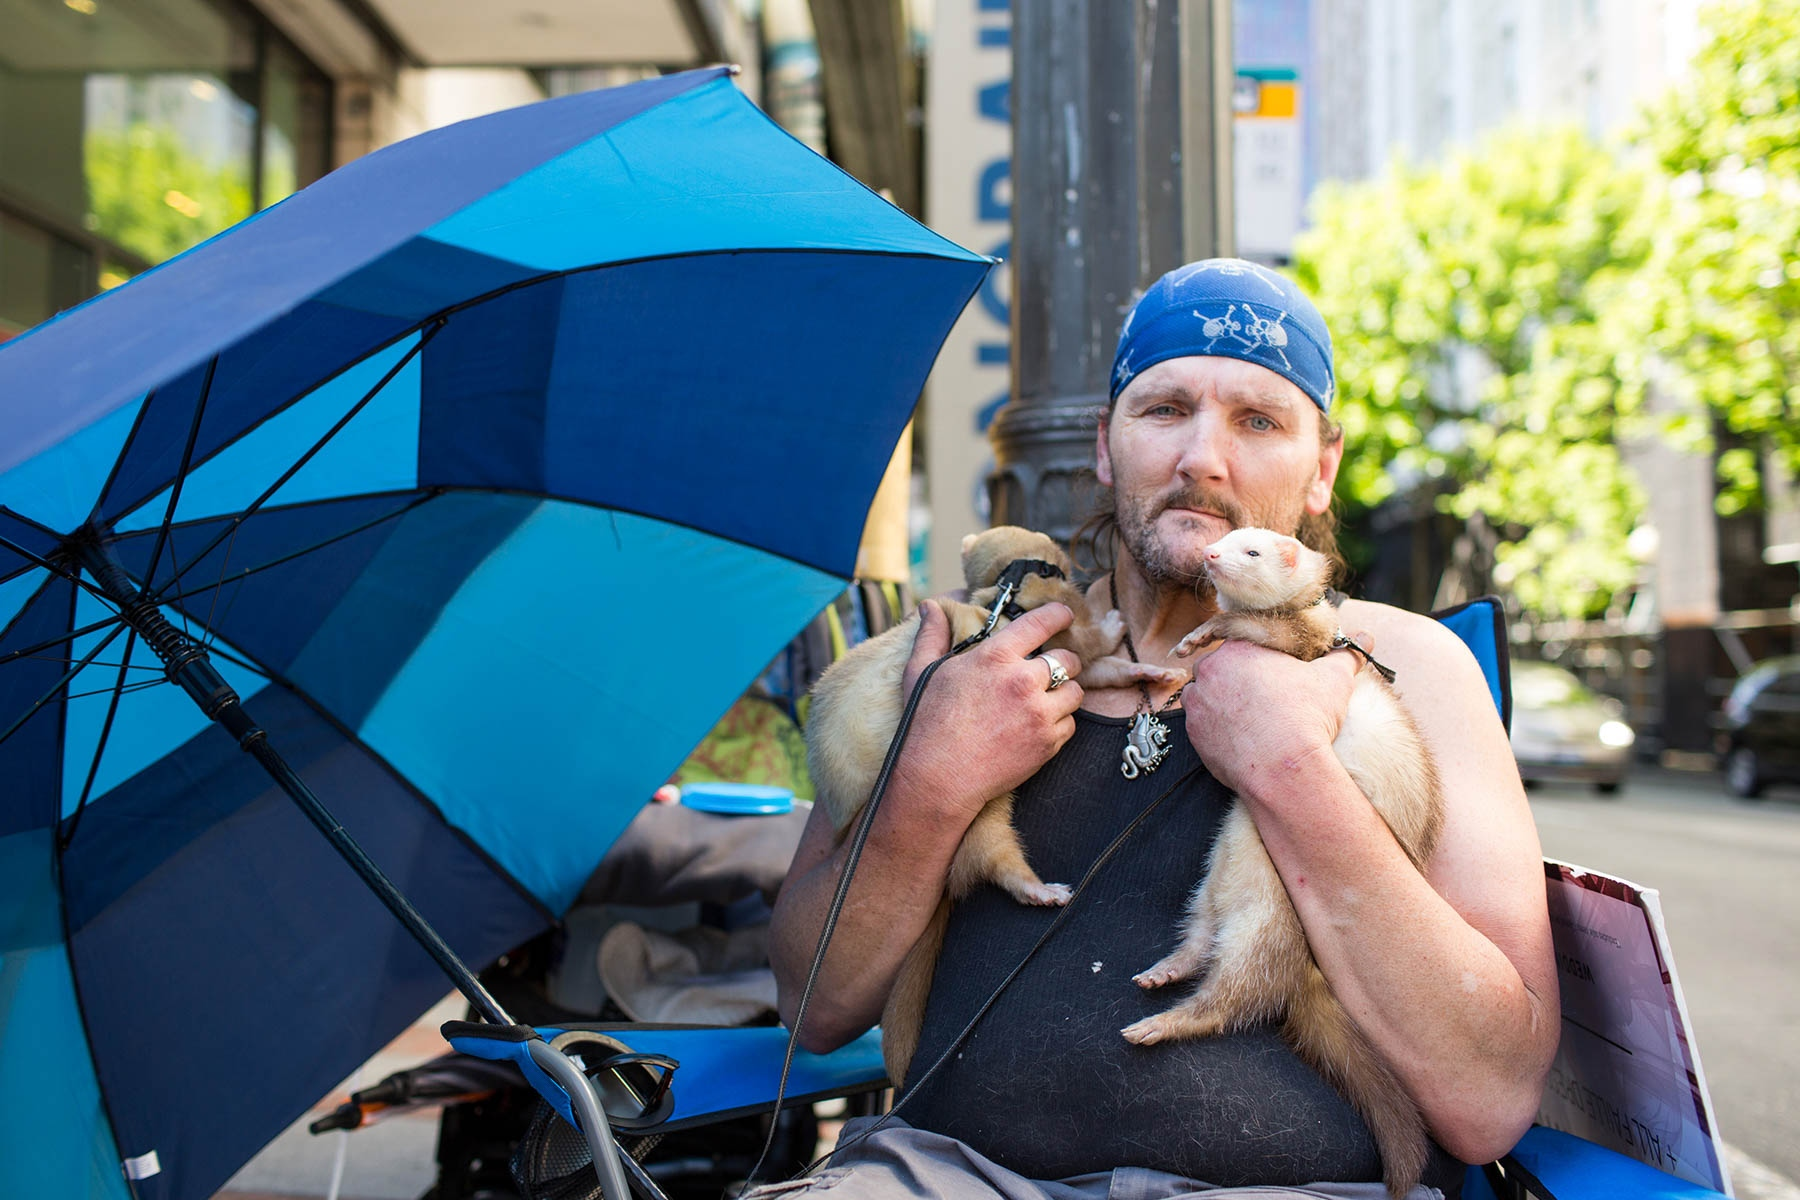 Richard Dyer with his pet ferrets Ricky and Tiny in downtown Seattle. 'Homeless people on their pets'  for the Guardian